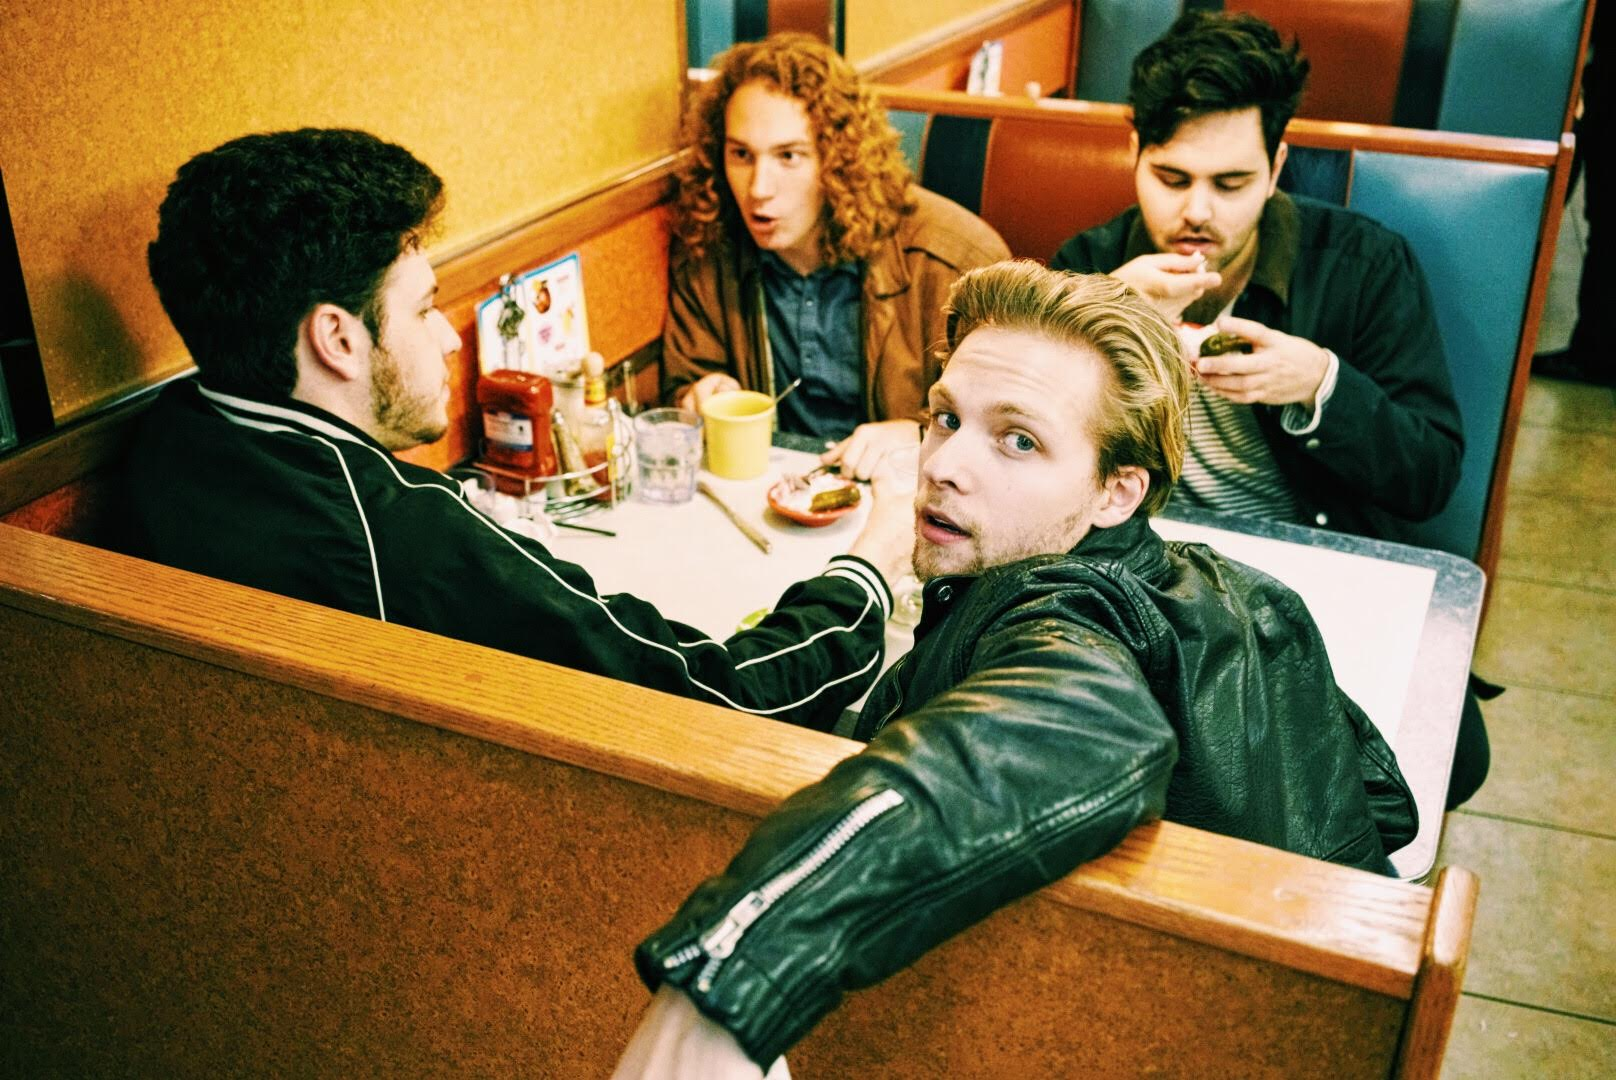 Loose Buttons, New York's next breakout indie groupl, are ready to sing about heartbreak.